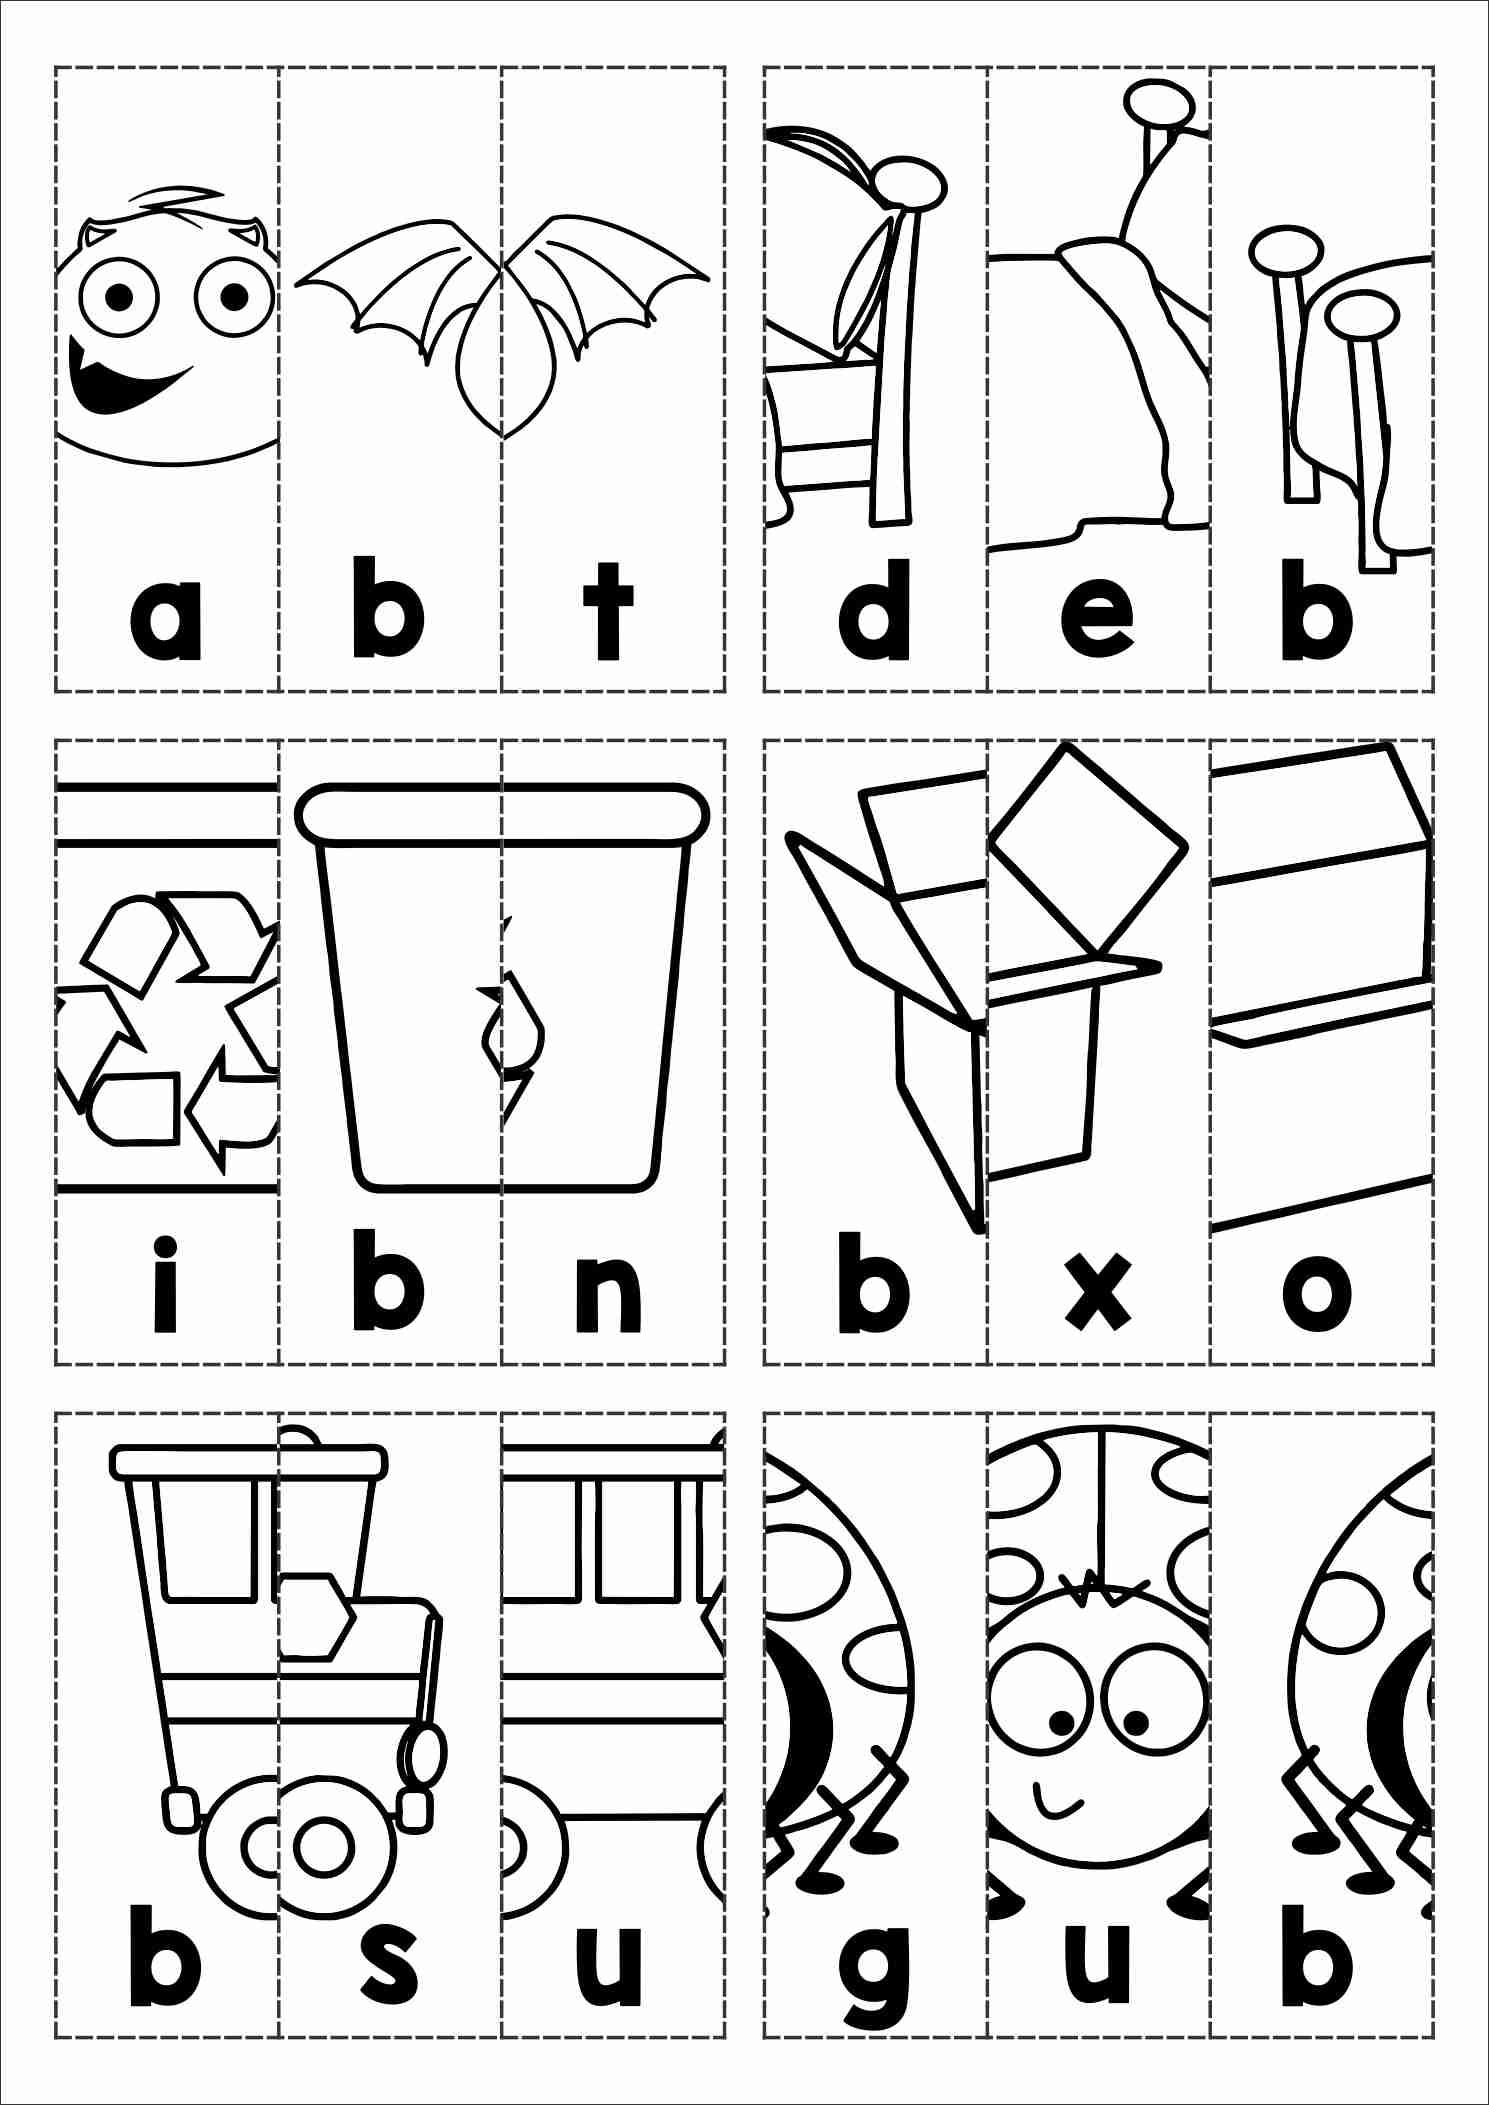 free phonics letter of the week b beginning b cvc words picture scramble cut and paste in. Black Bedroom Furniture Sets. Home Design Ideas